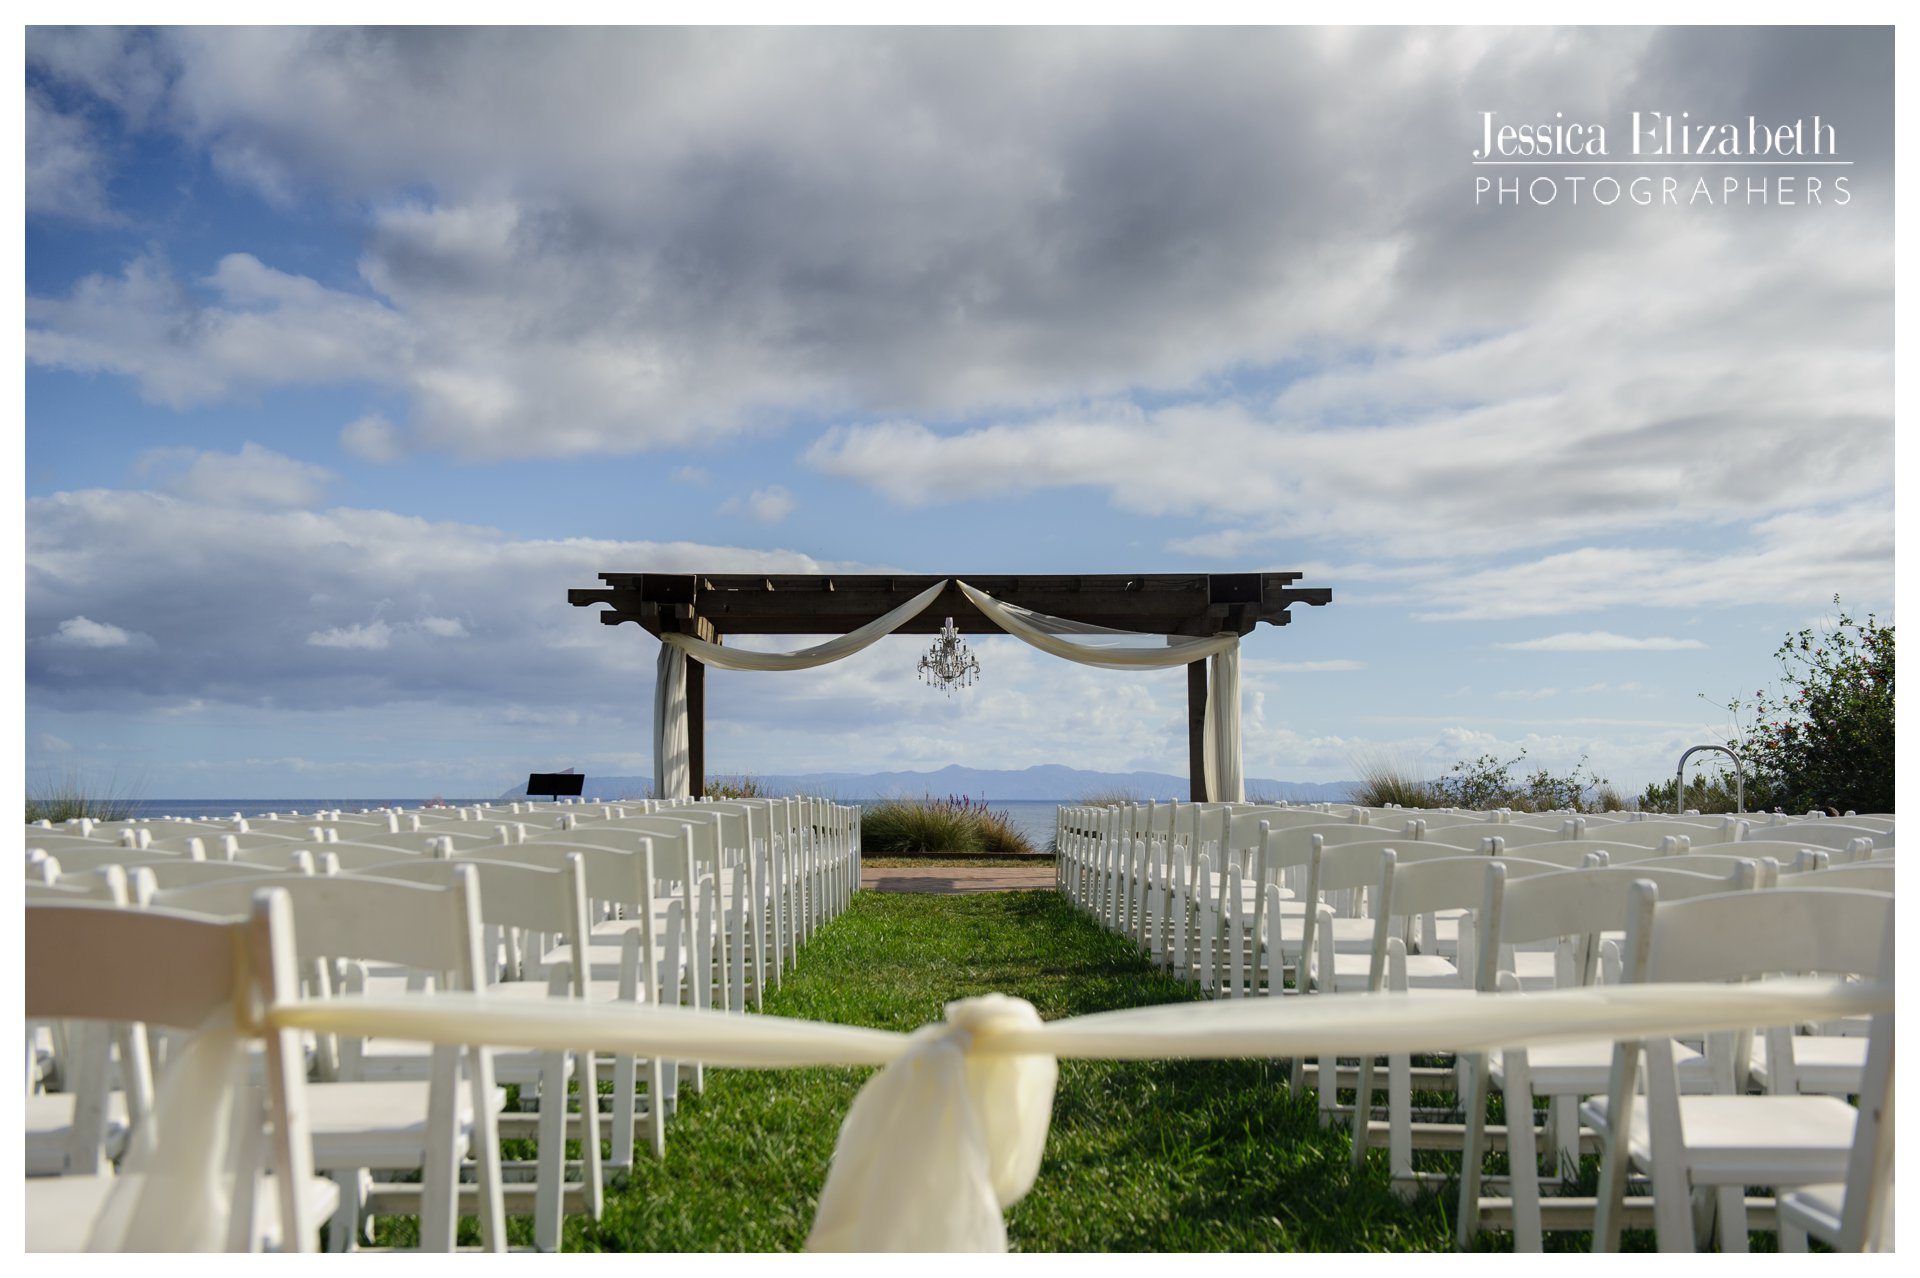 03-Terranea Palos Verdes Wedding Photography by Jessica Elizabeth-w